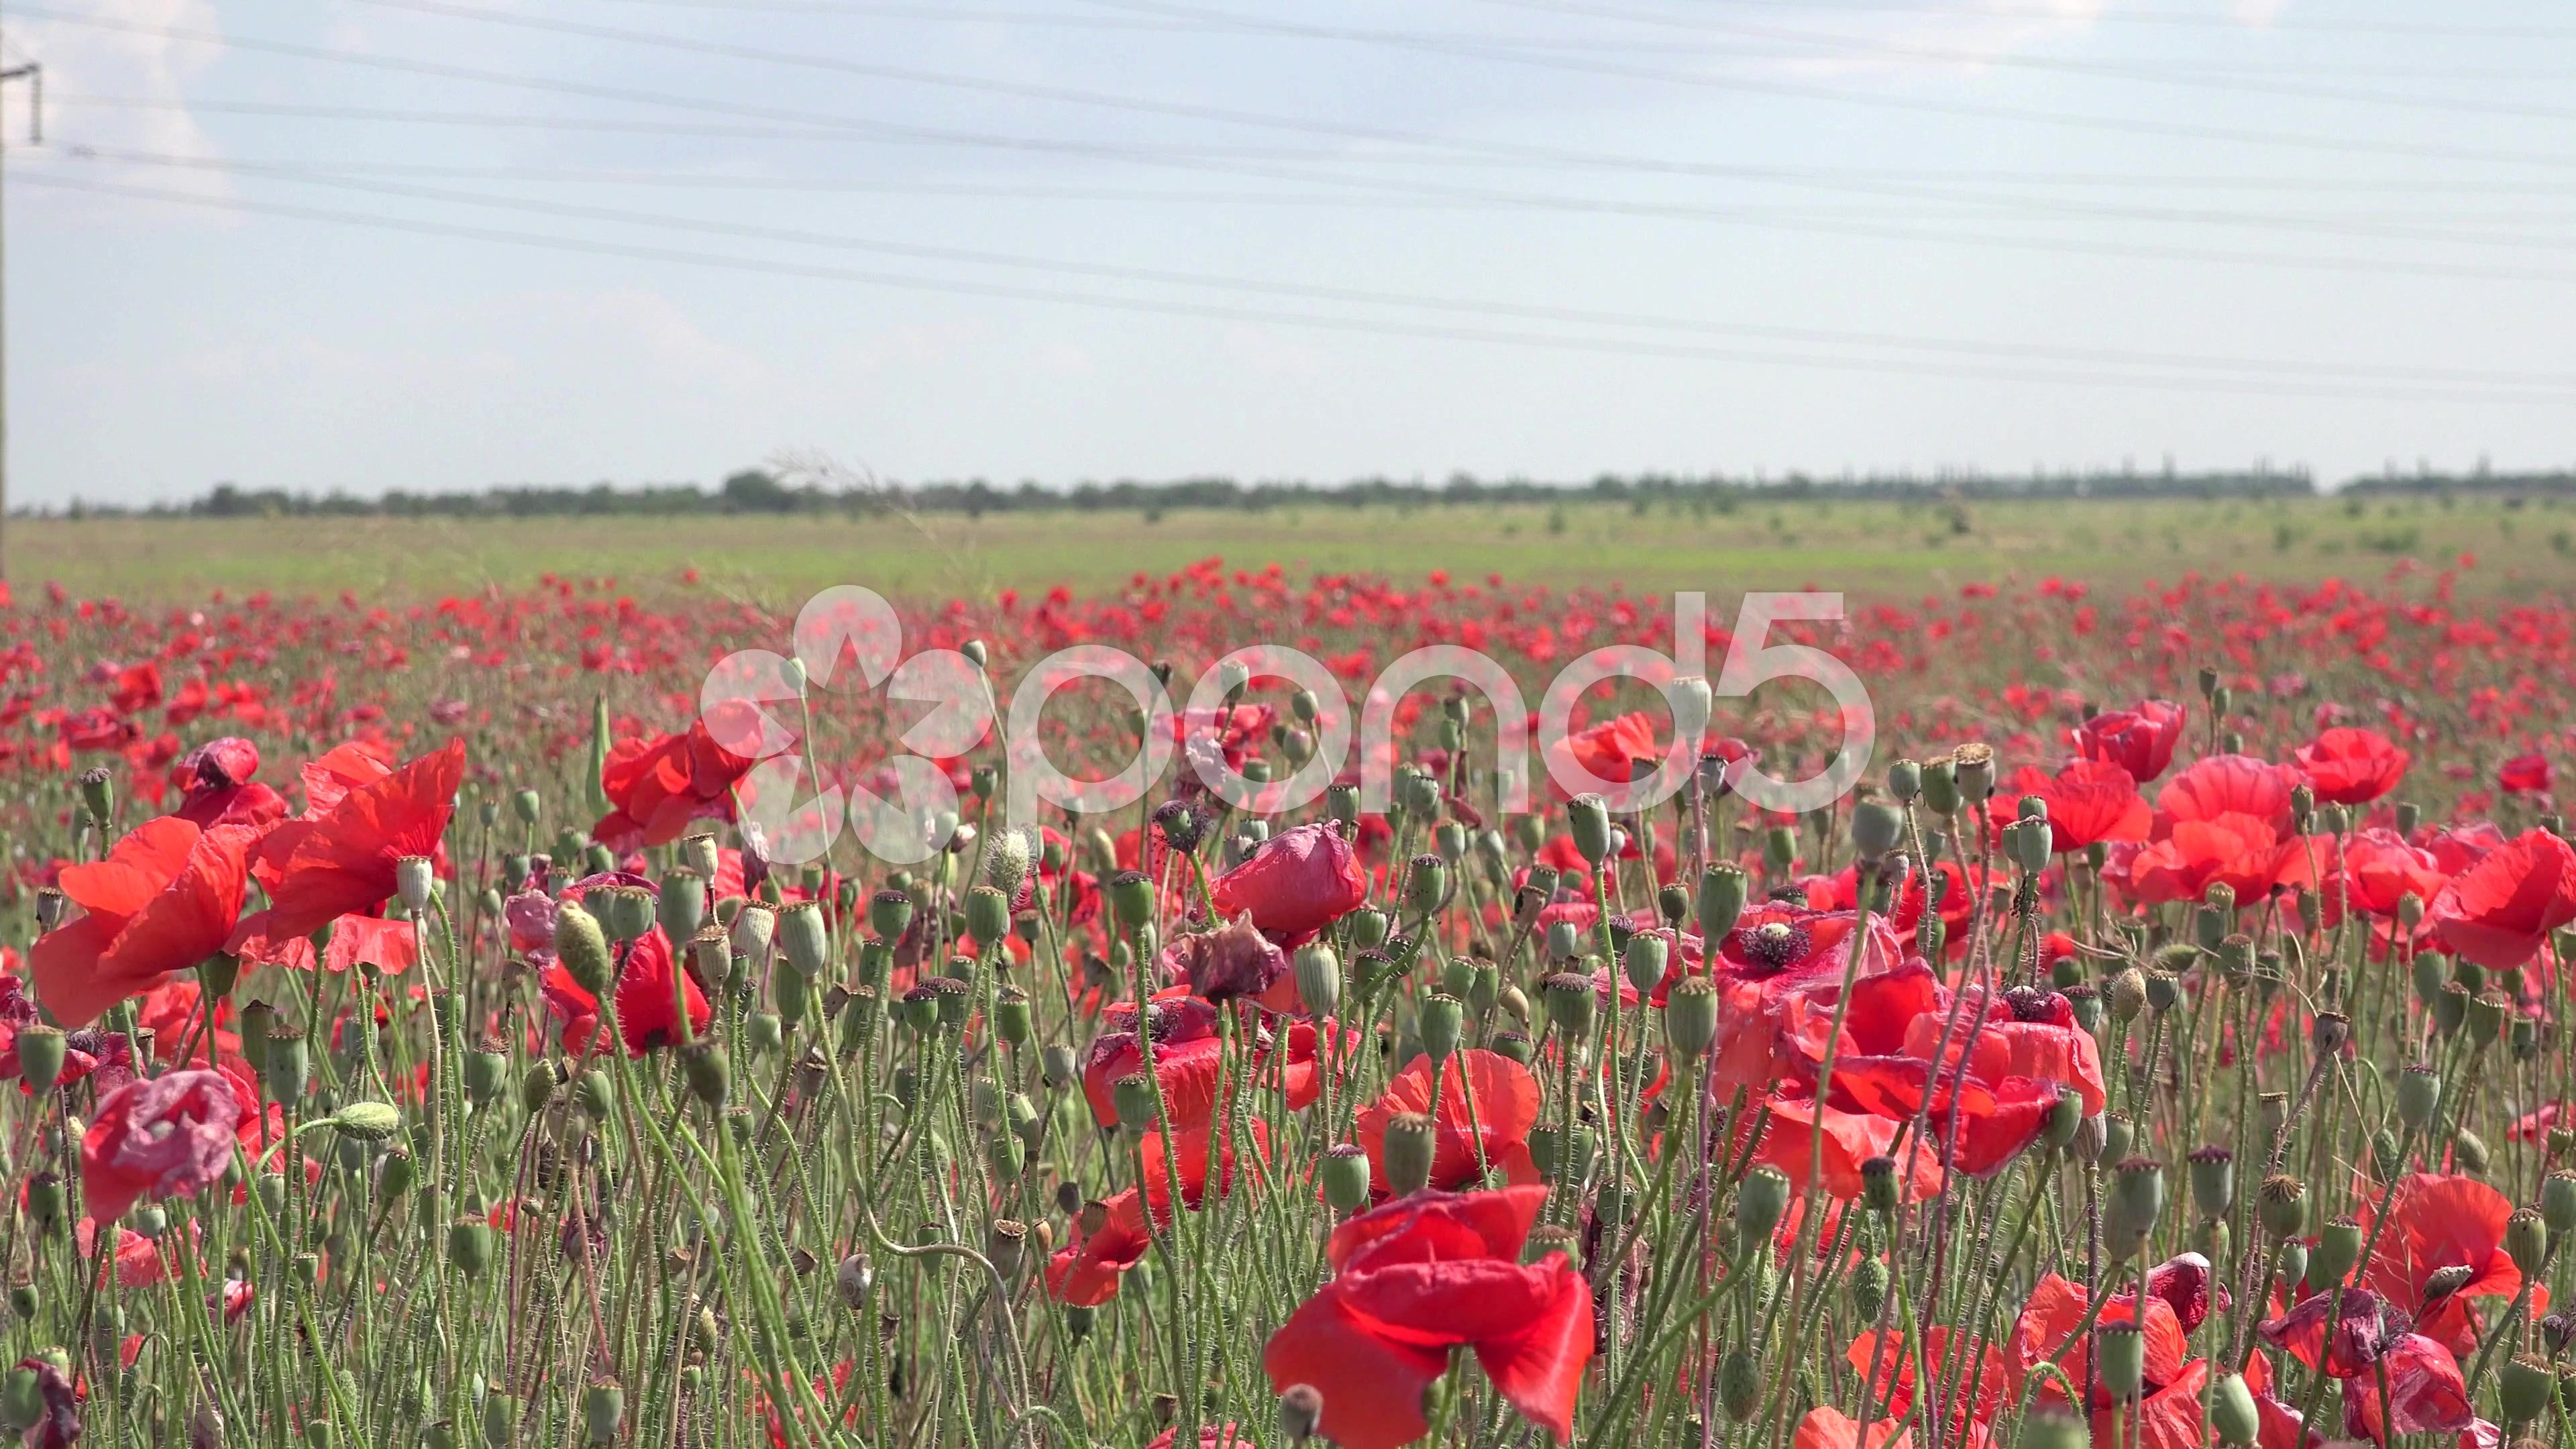 Field Of Red Poppies Agricultural Plants After Flowering Poppy